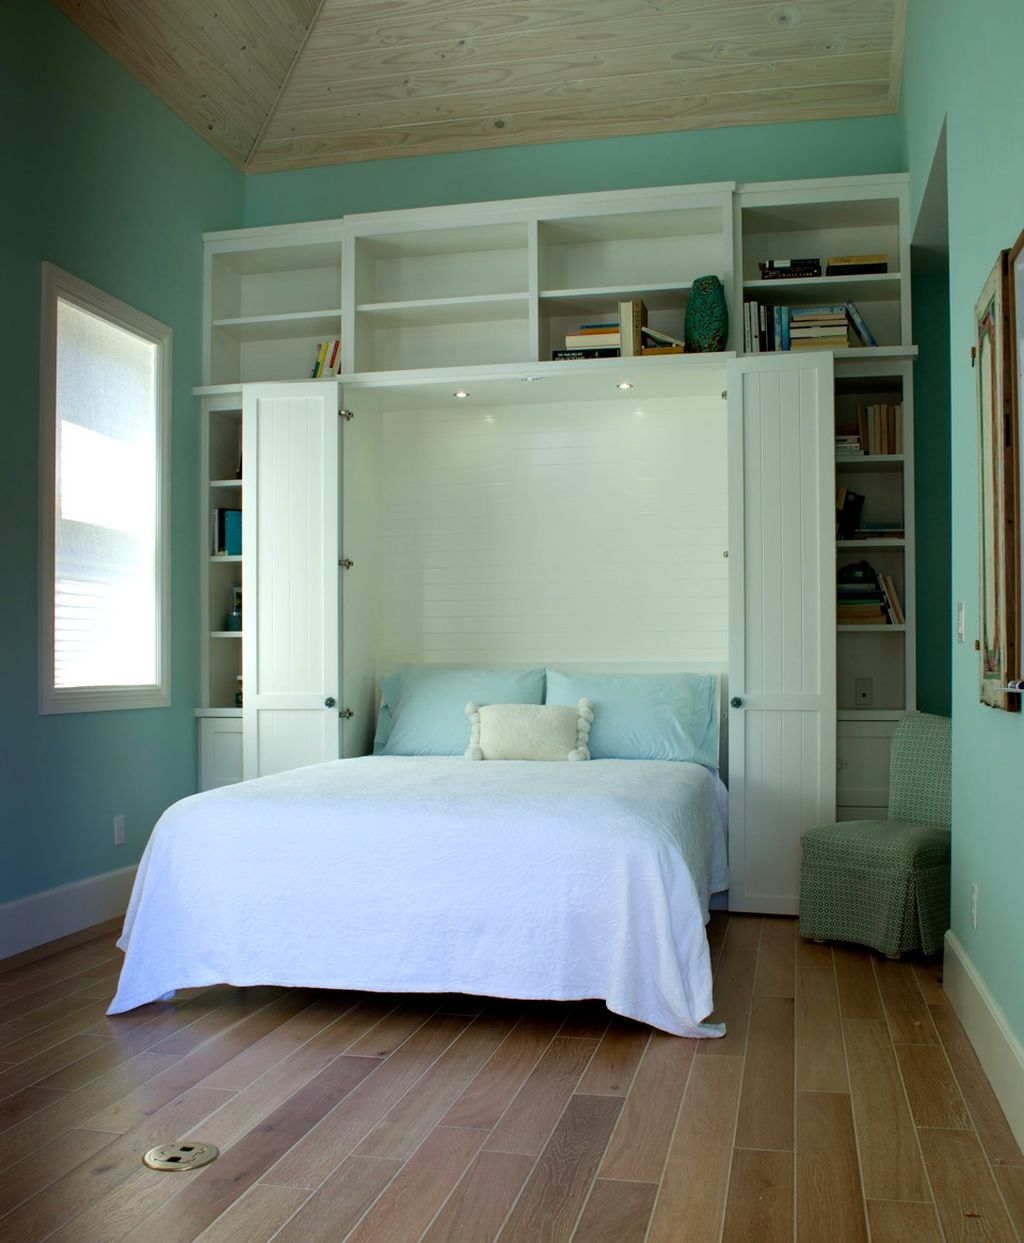 20 space saving murphy bed design ideas for small rooms for Small room bed ideas